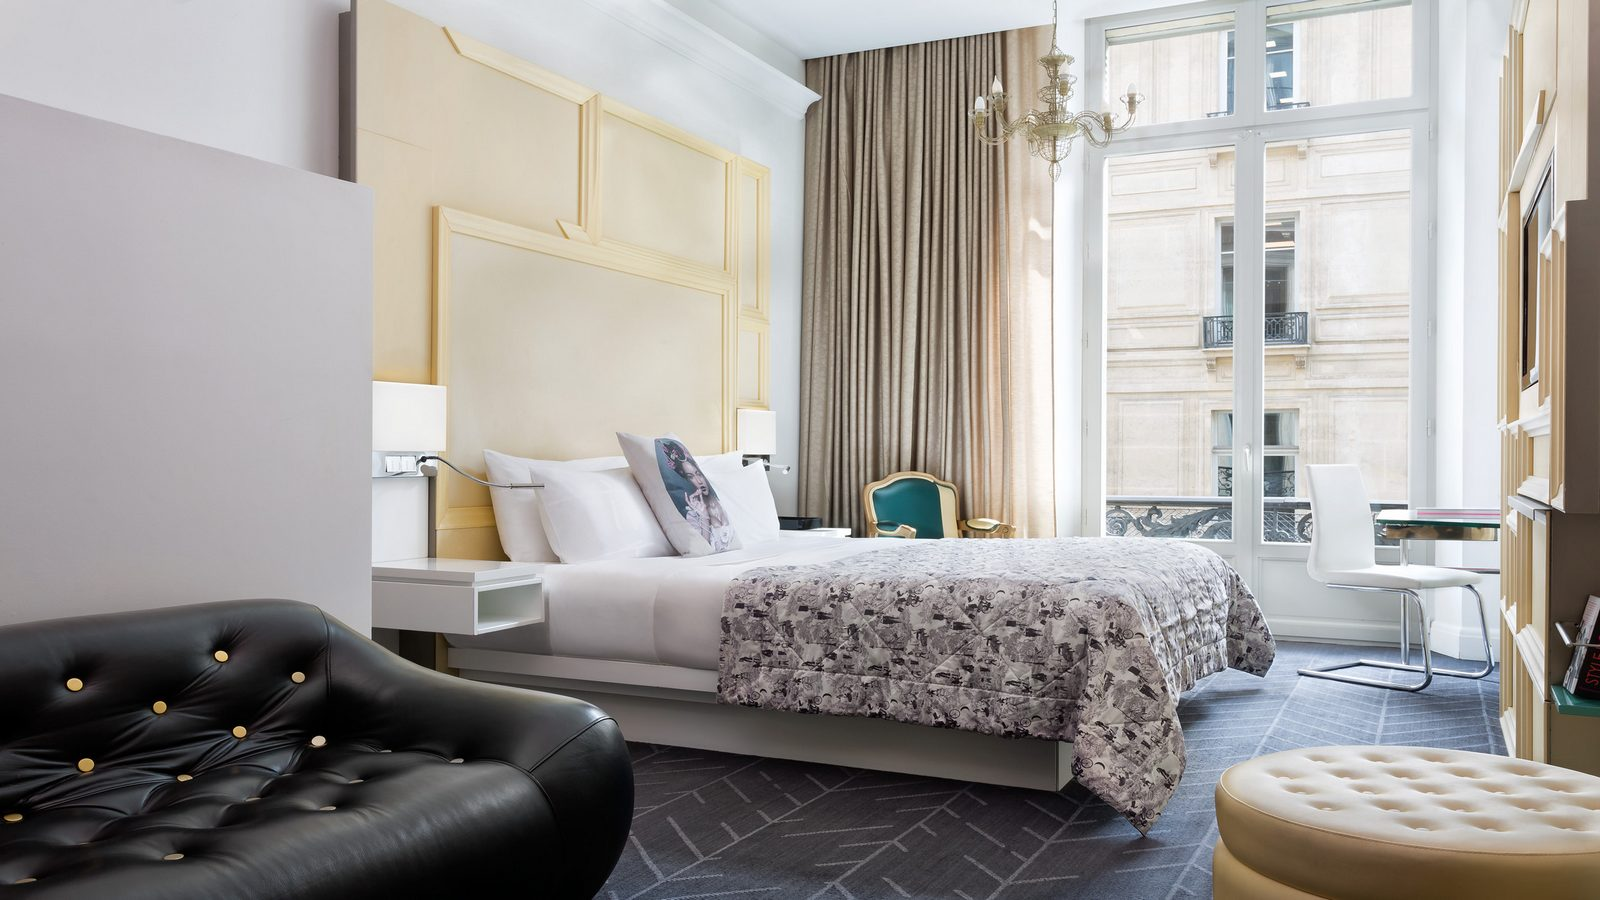 W Paris - Opéra | Rooms and Suites | Official Website